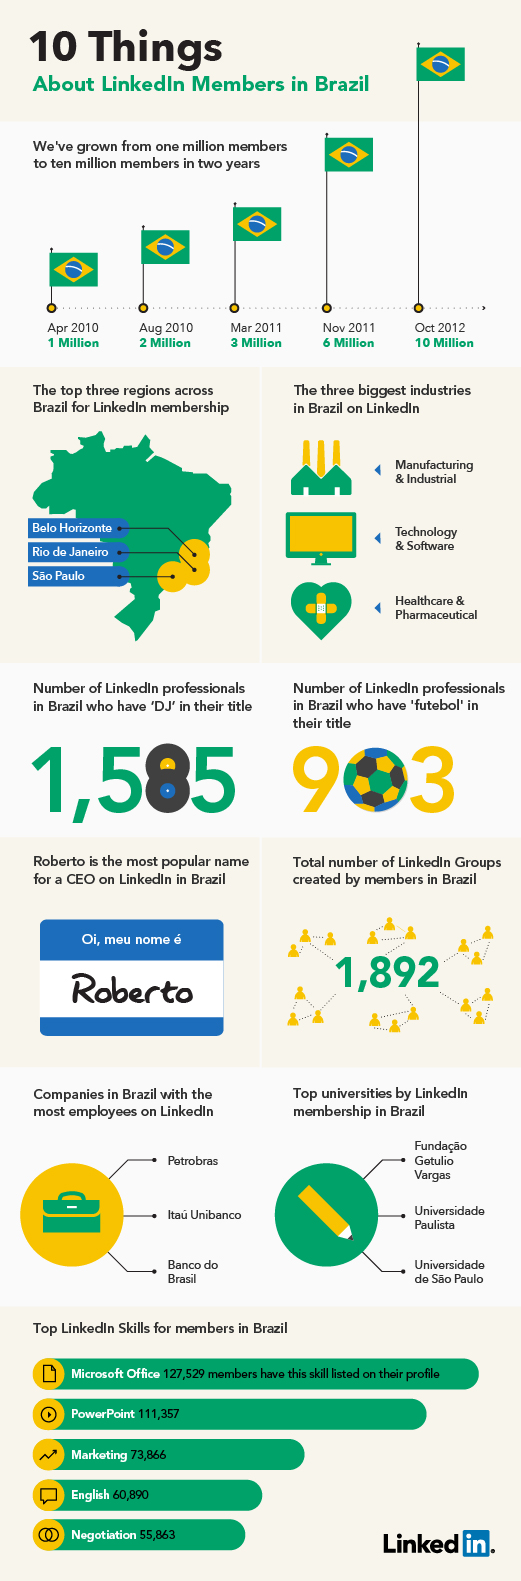 9. Celebrating 10 Million Members in Brazil